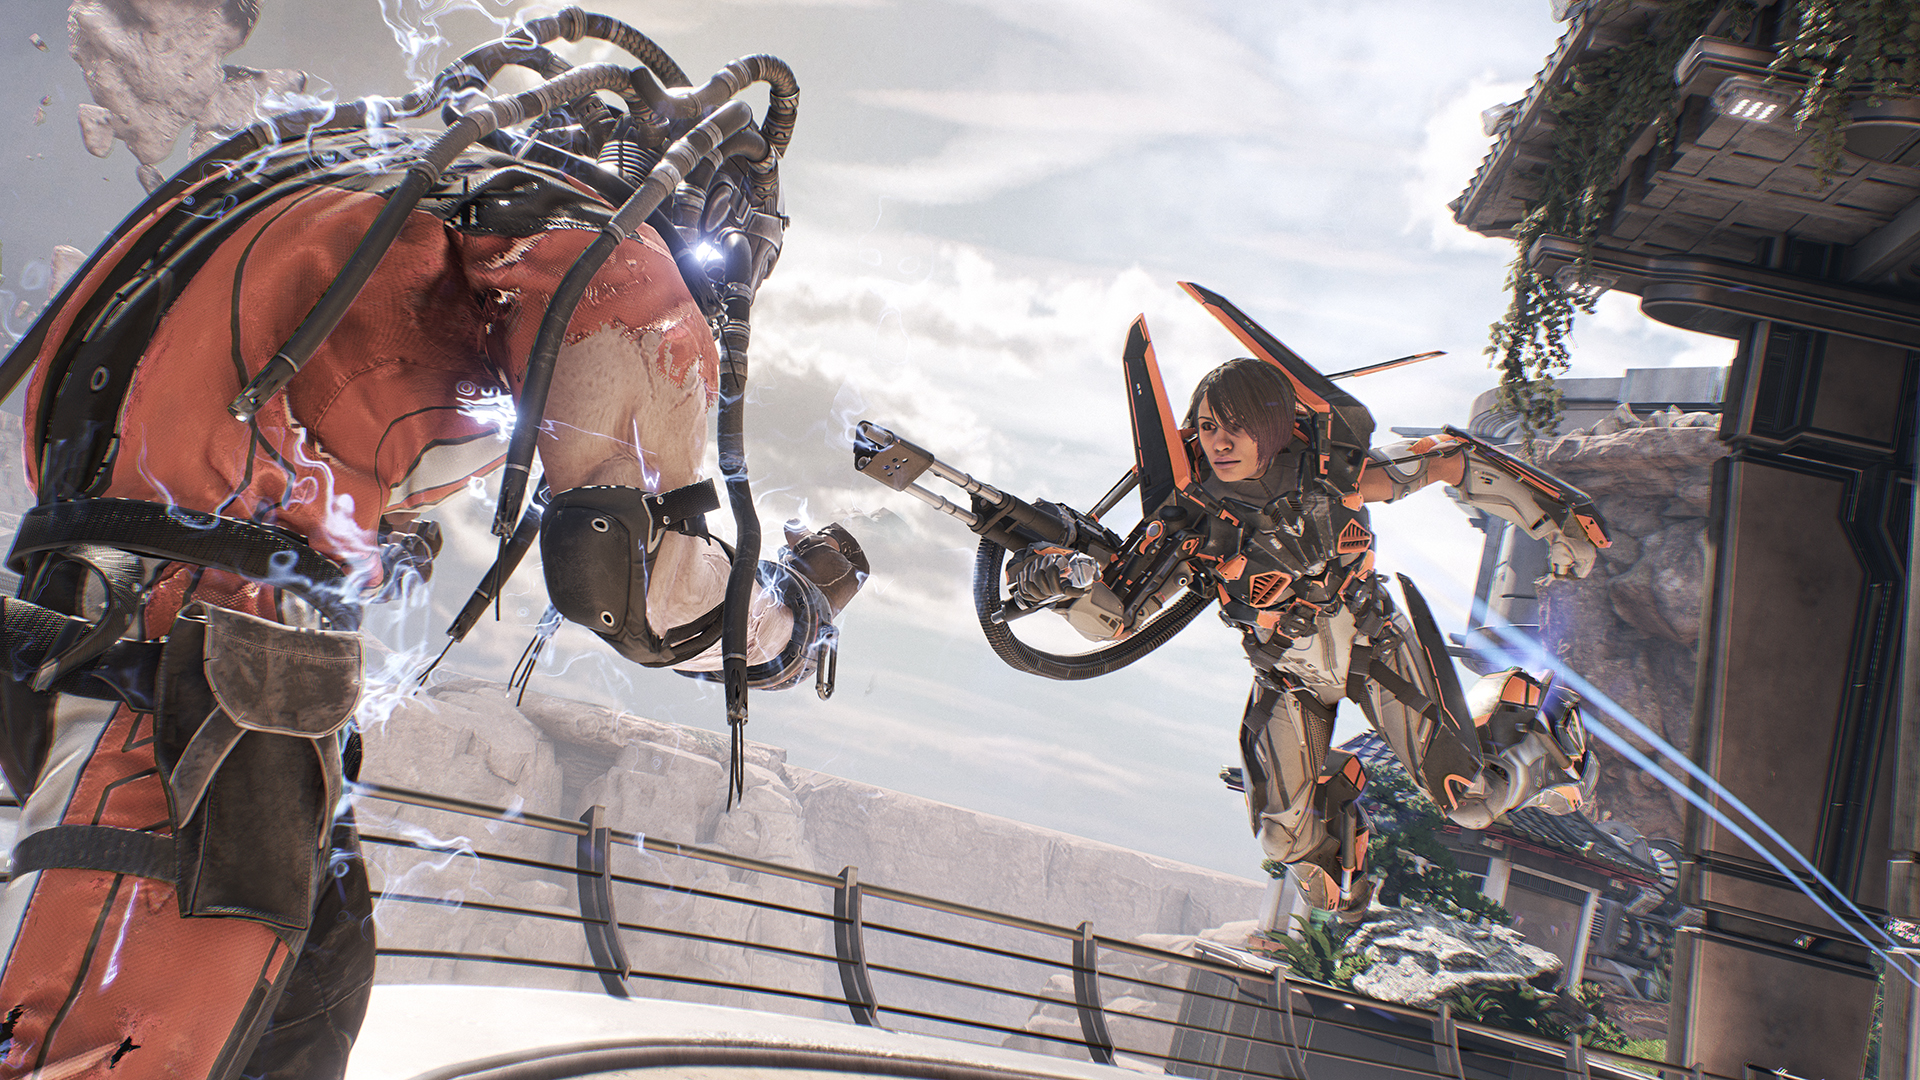 'Gears of War' creator's 'LawBreakers' is a timed Steam exclusive